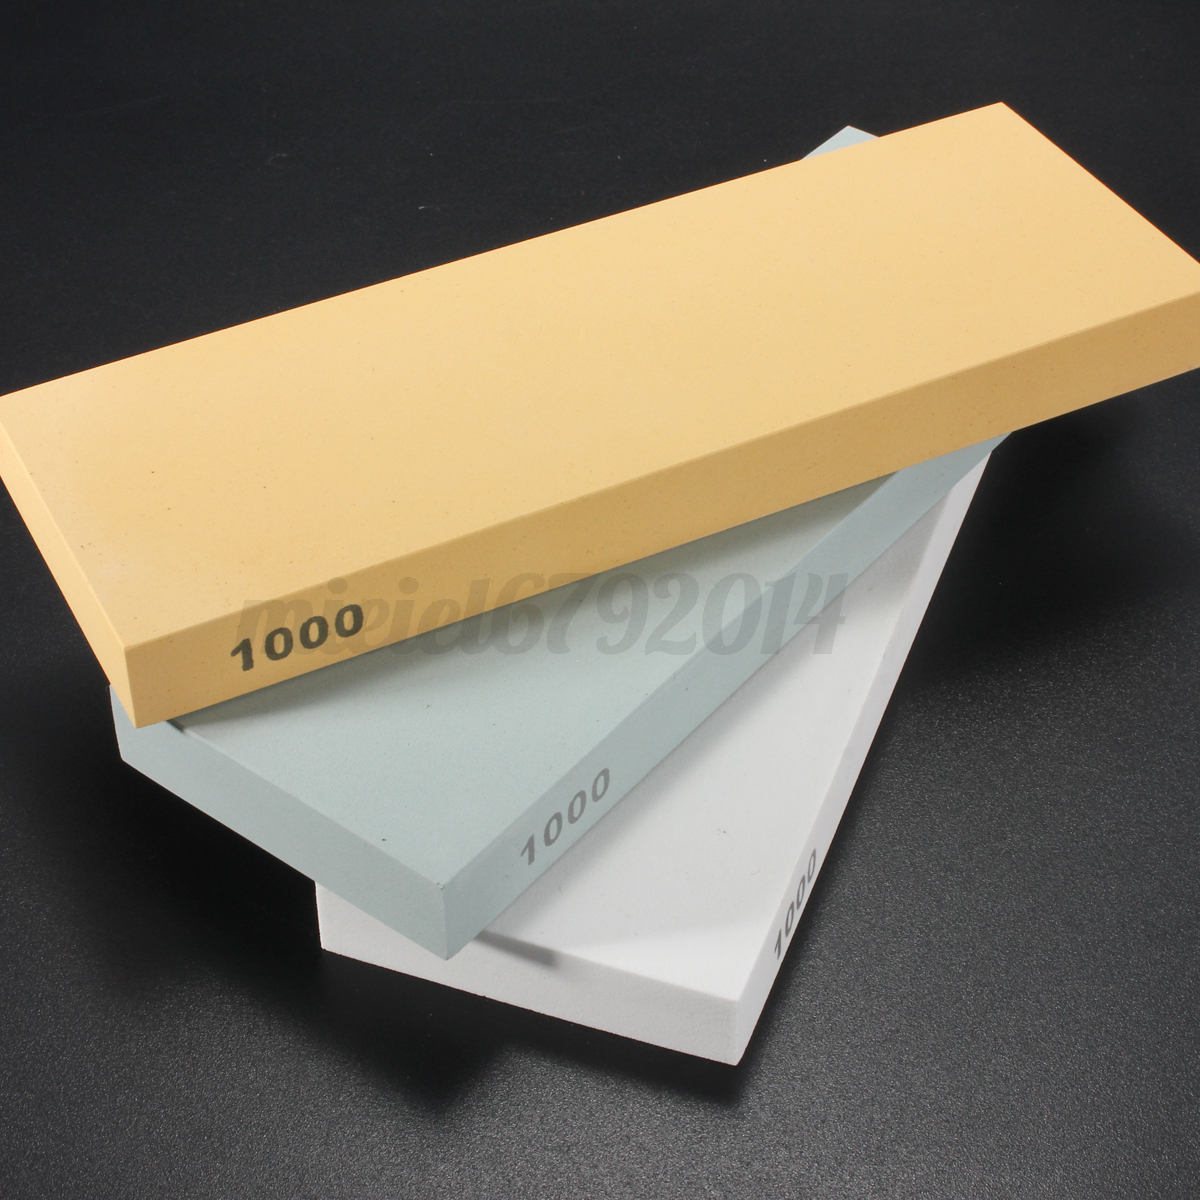 28 whetstone for kitchen knives 10000 kitchen knife grit whetstone for kitchen knives 10000 kitchen knife grit honing sharpener sharpening stone